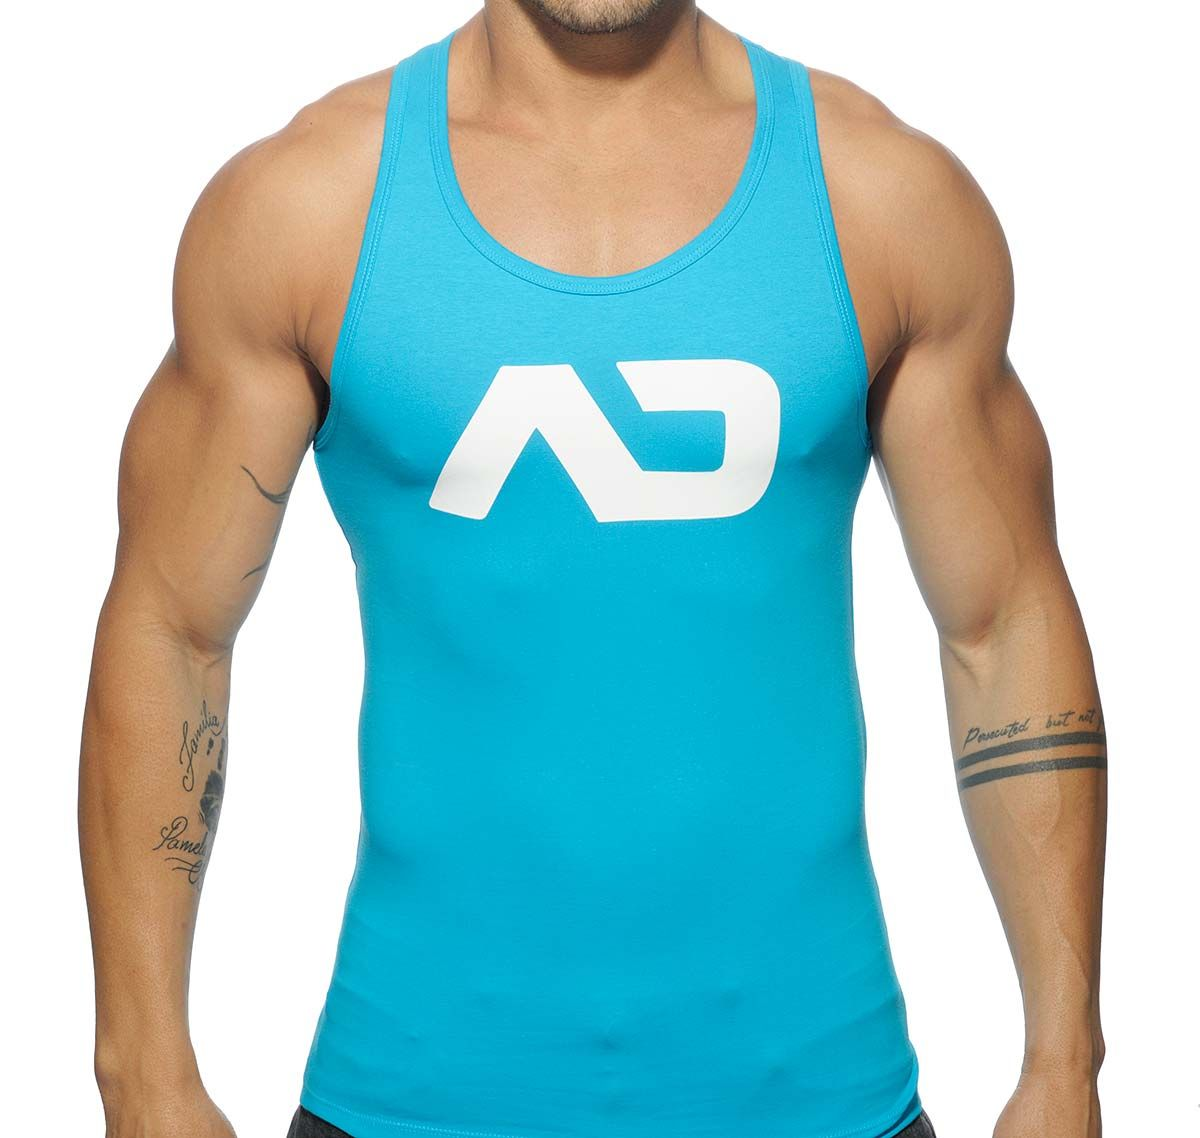 Addicted Sportshirt BASIC AD TANK TOP AD457, türkis